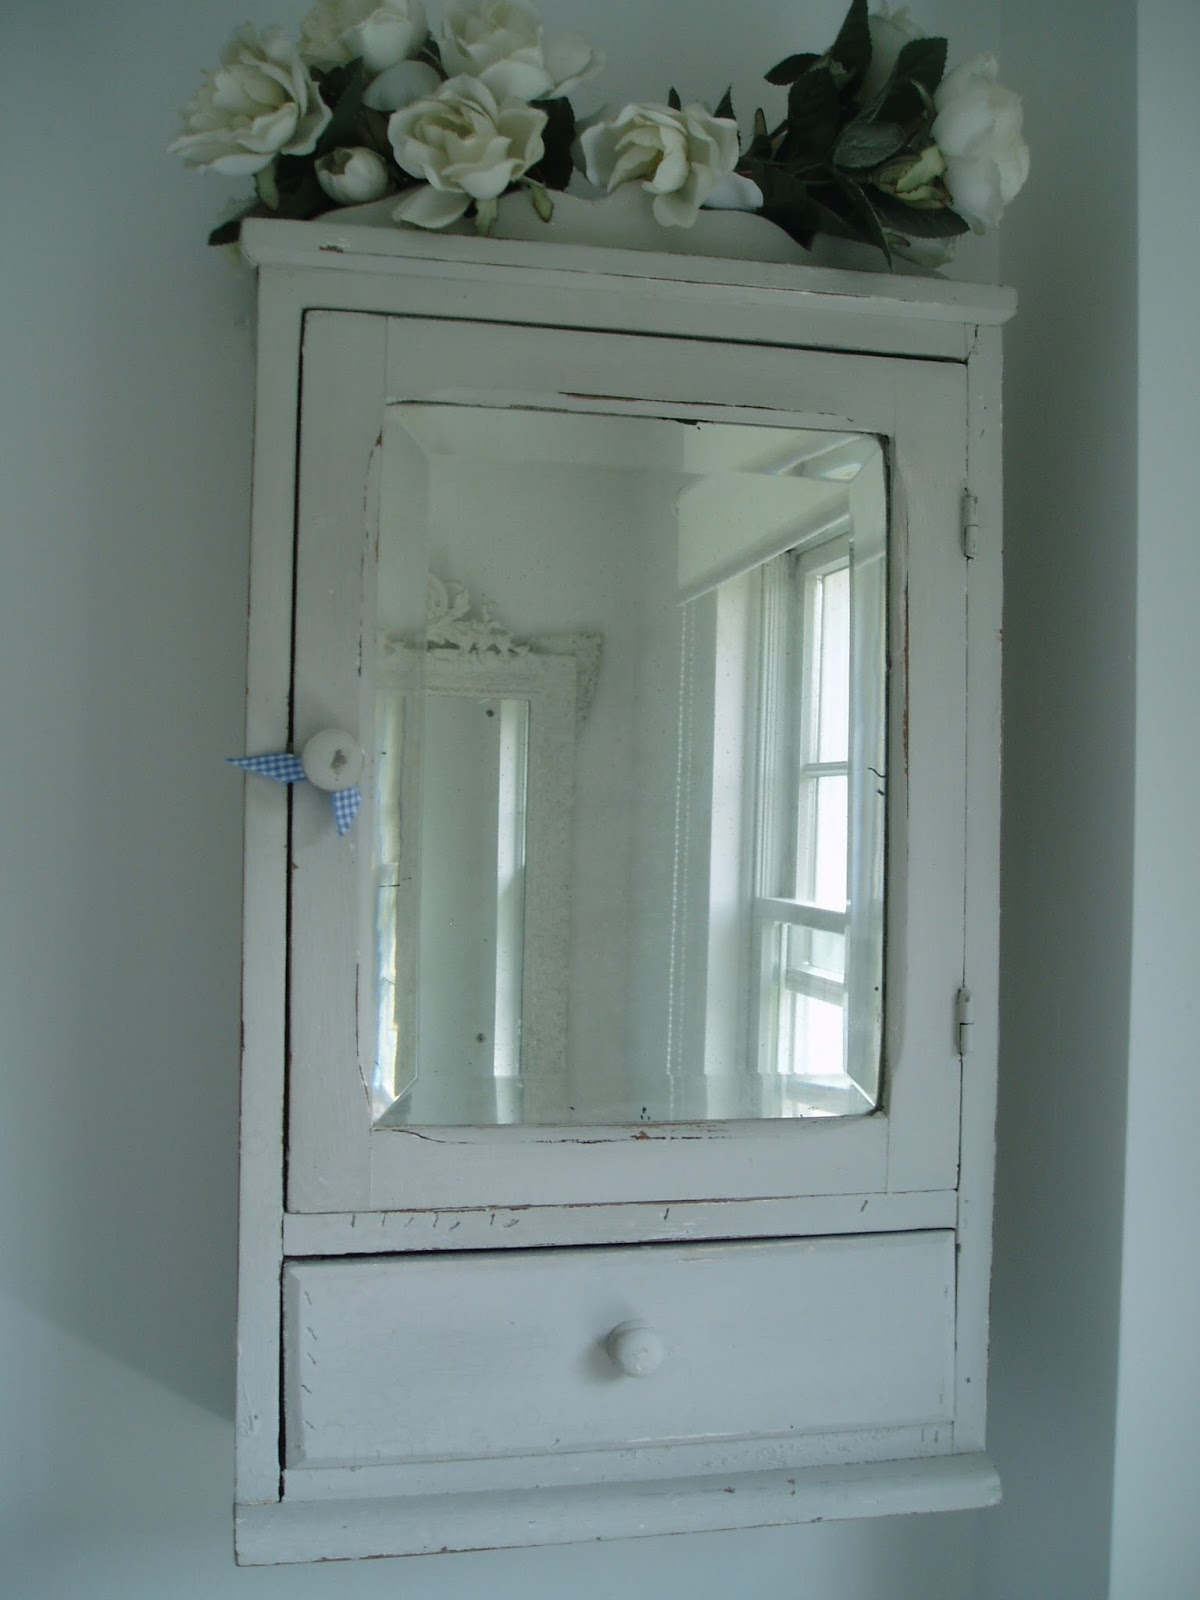 Antique Mirrored Bathroom Wall Cabinet